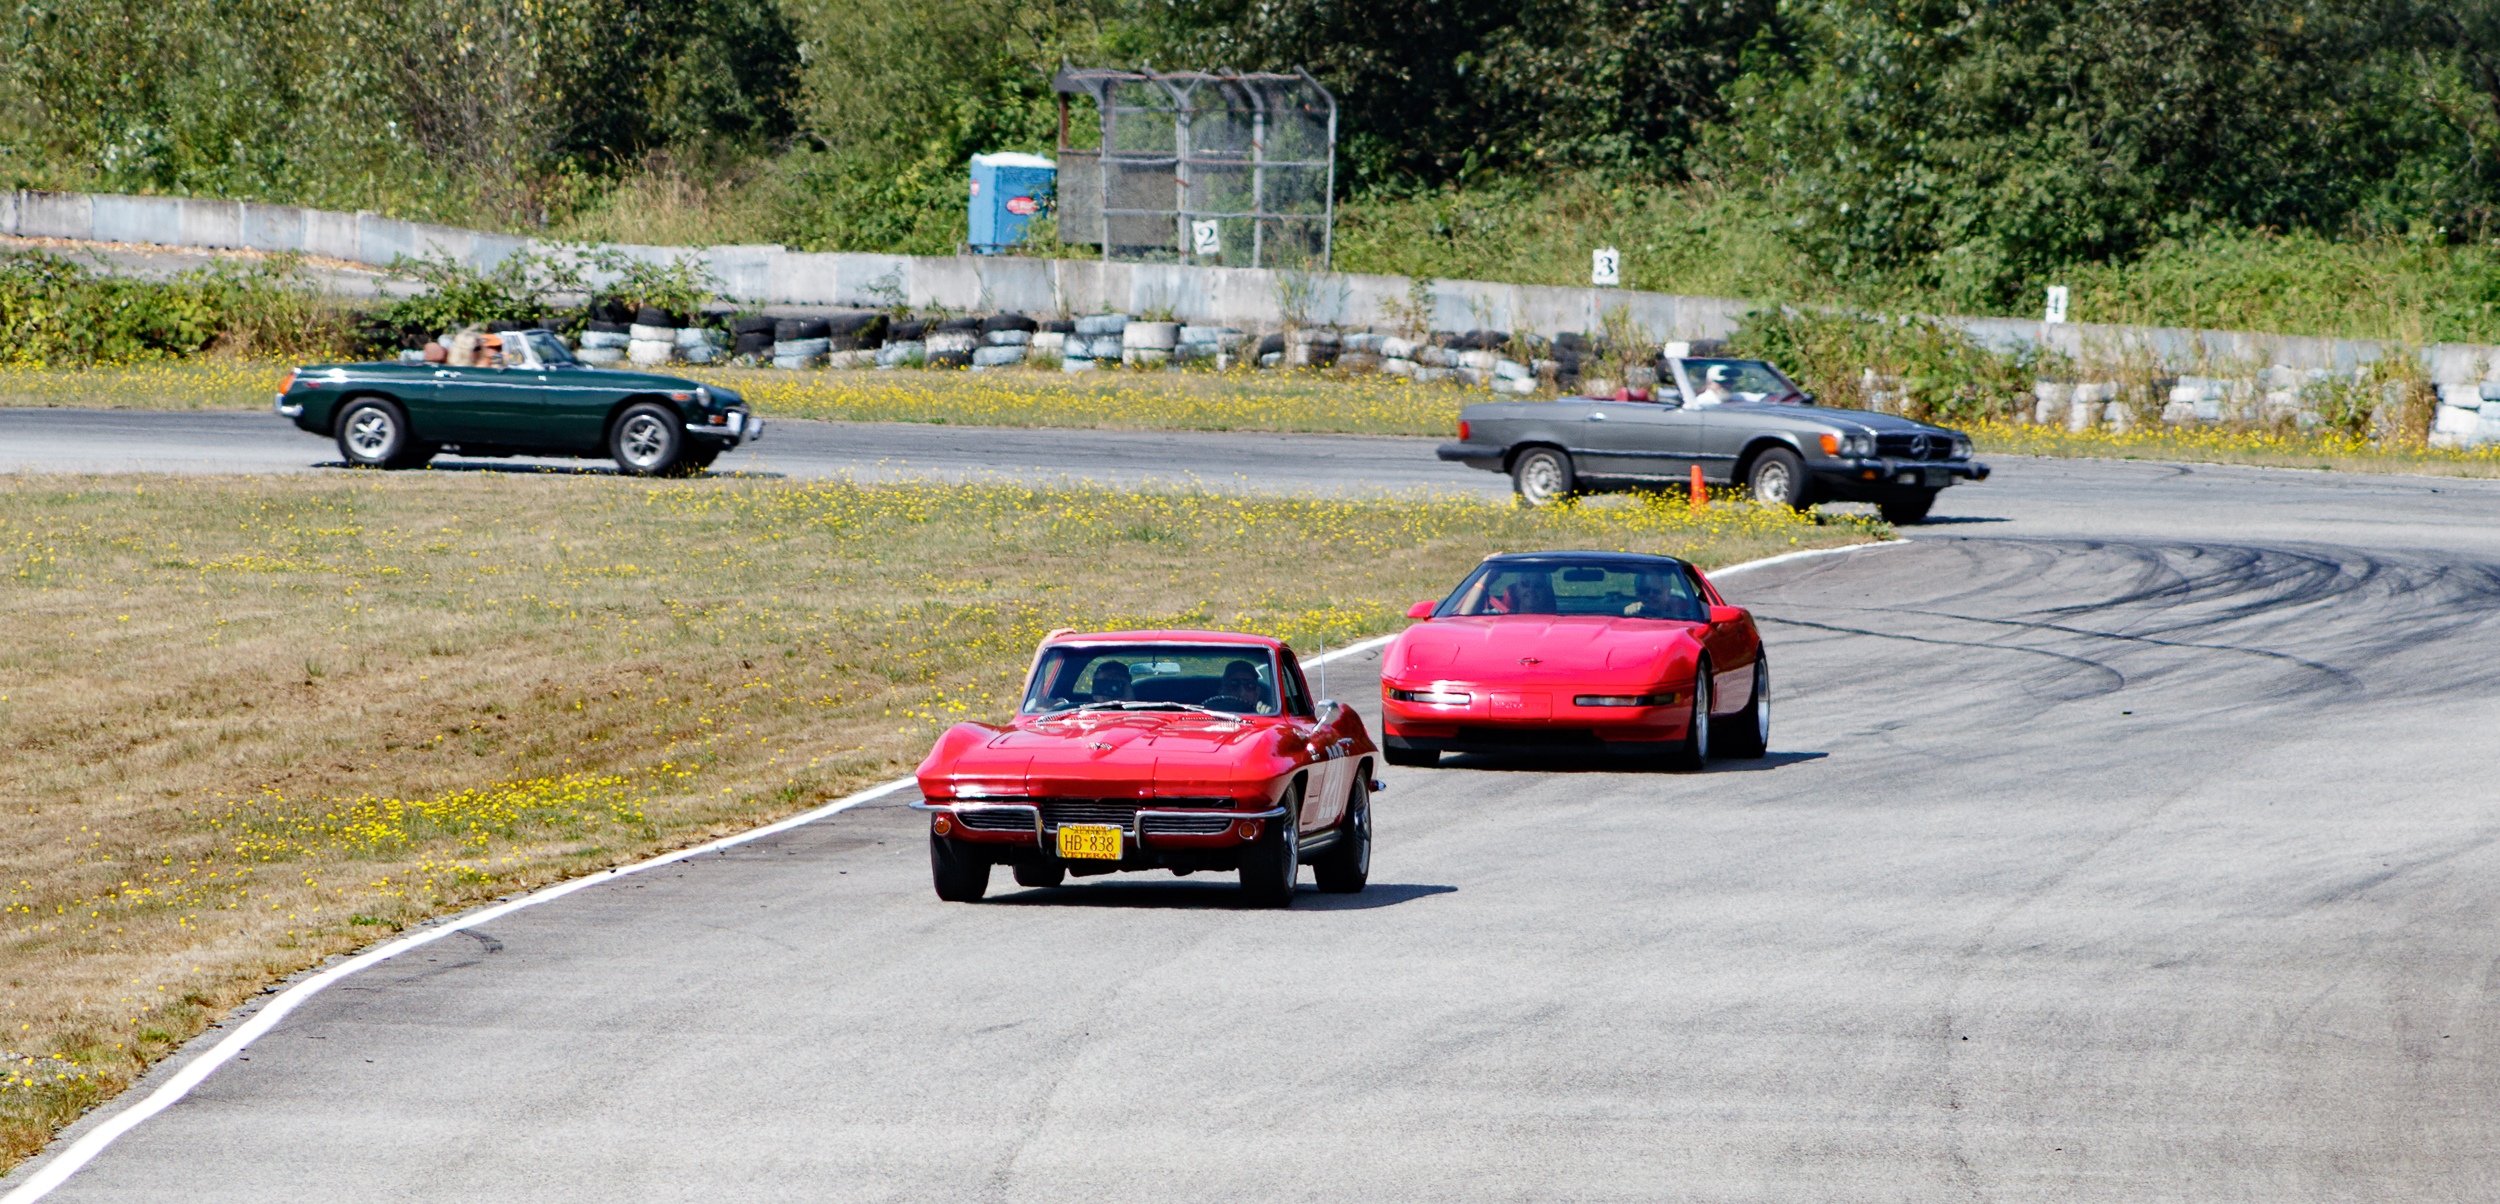 1964 Chevrolet Corvette on the track